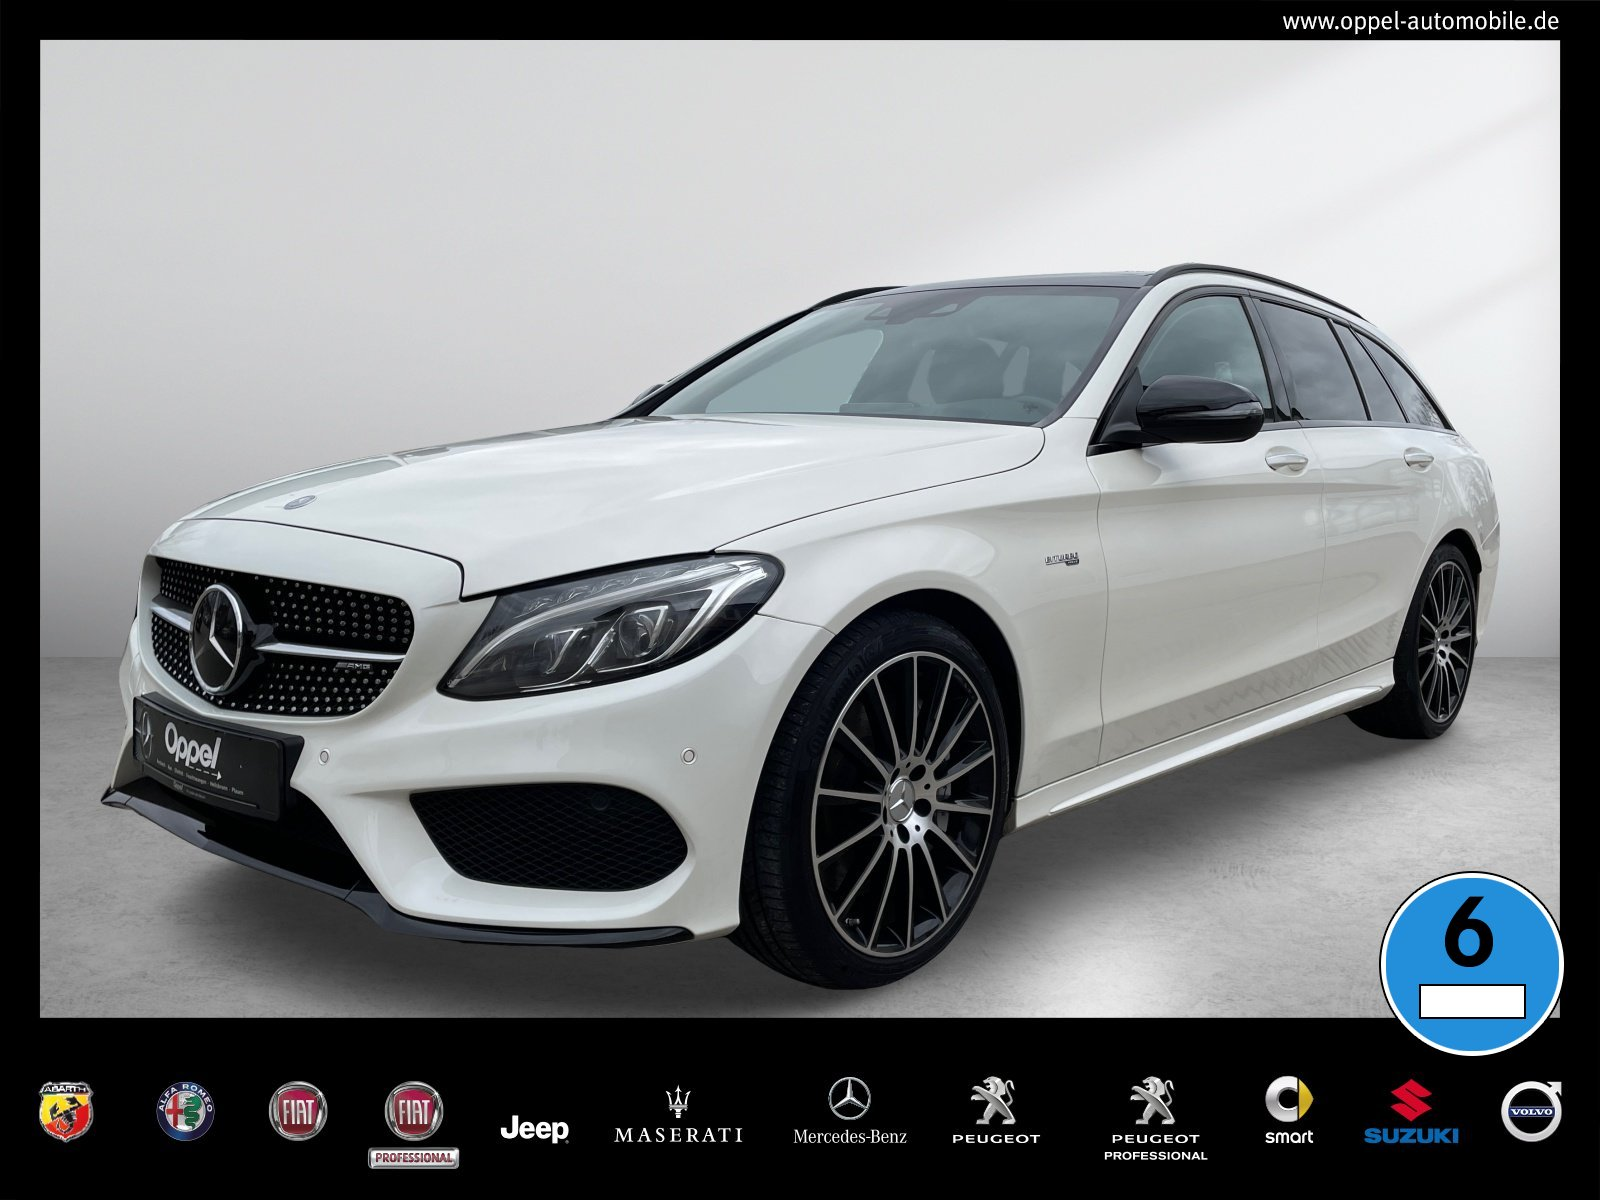 Mercedes-Benz C 43 AMG 4MATIC T-Modell ACC+PANO+NIGHT+AHK+LED, Jahr 2017, Benzin